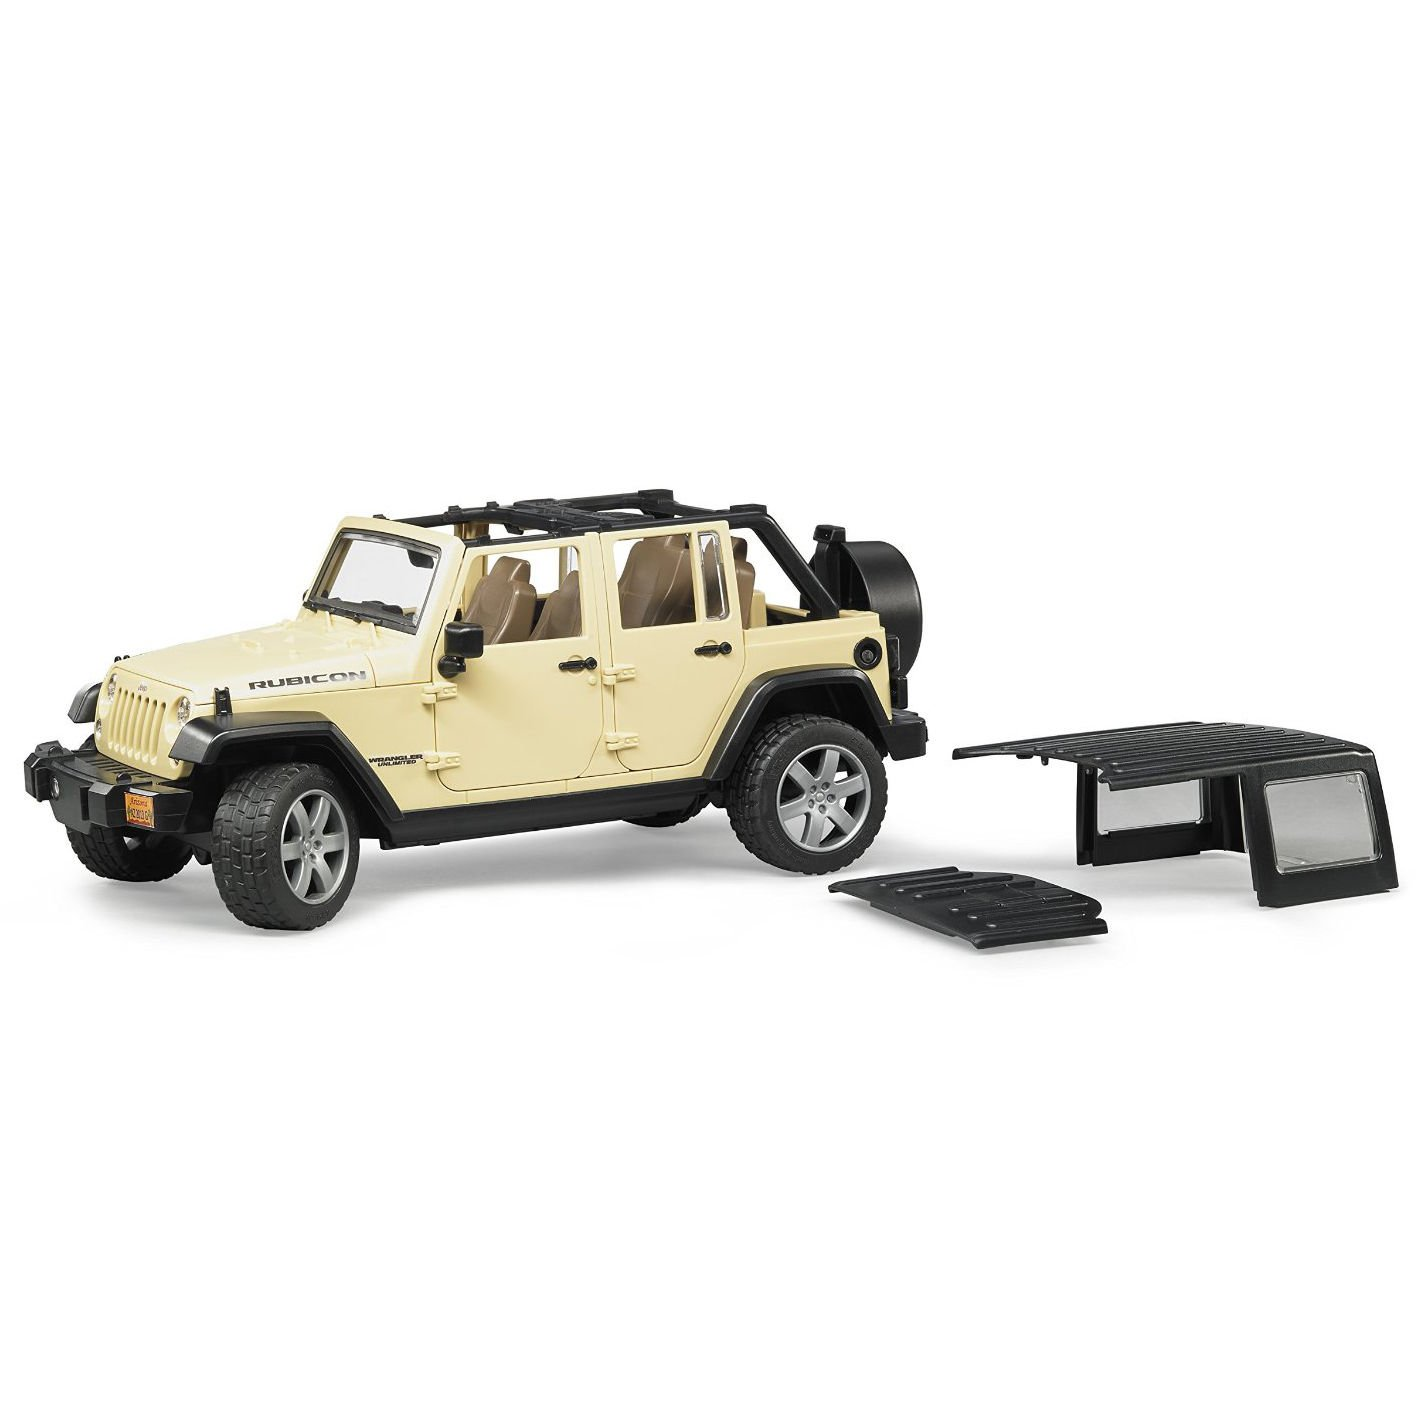 Jeep Wrangler Toys Cars Kids Toy Vehicles Realistic Off Leaking Roof Road Animal Unlimited Rubicon With Detachable House Deals Games